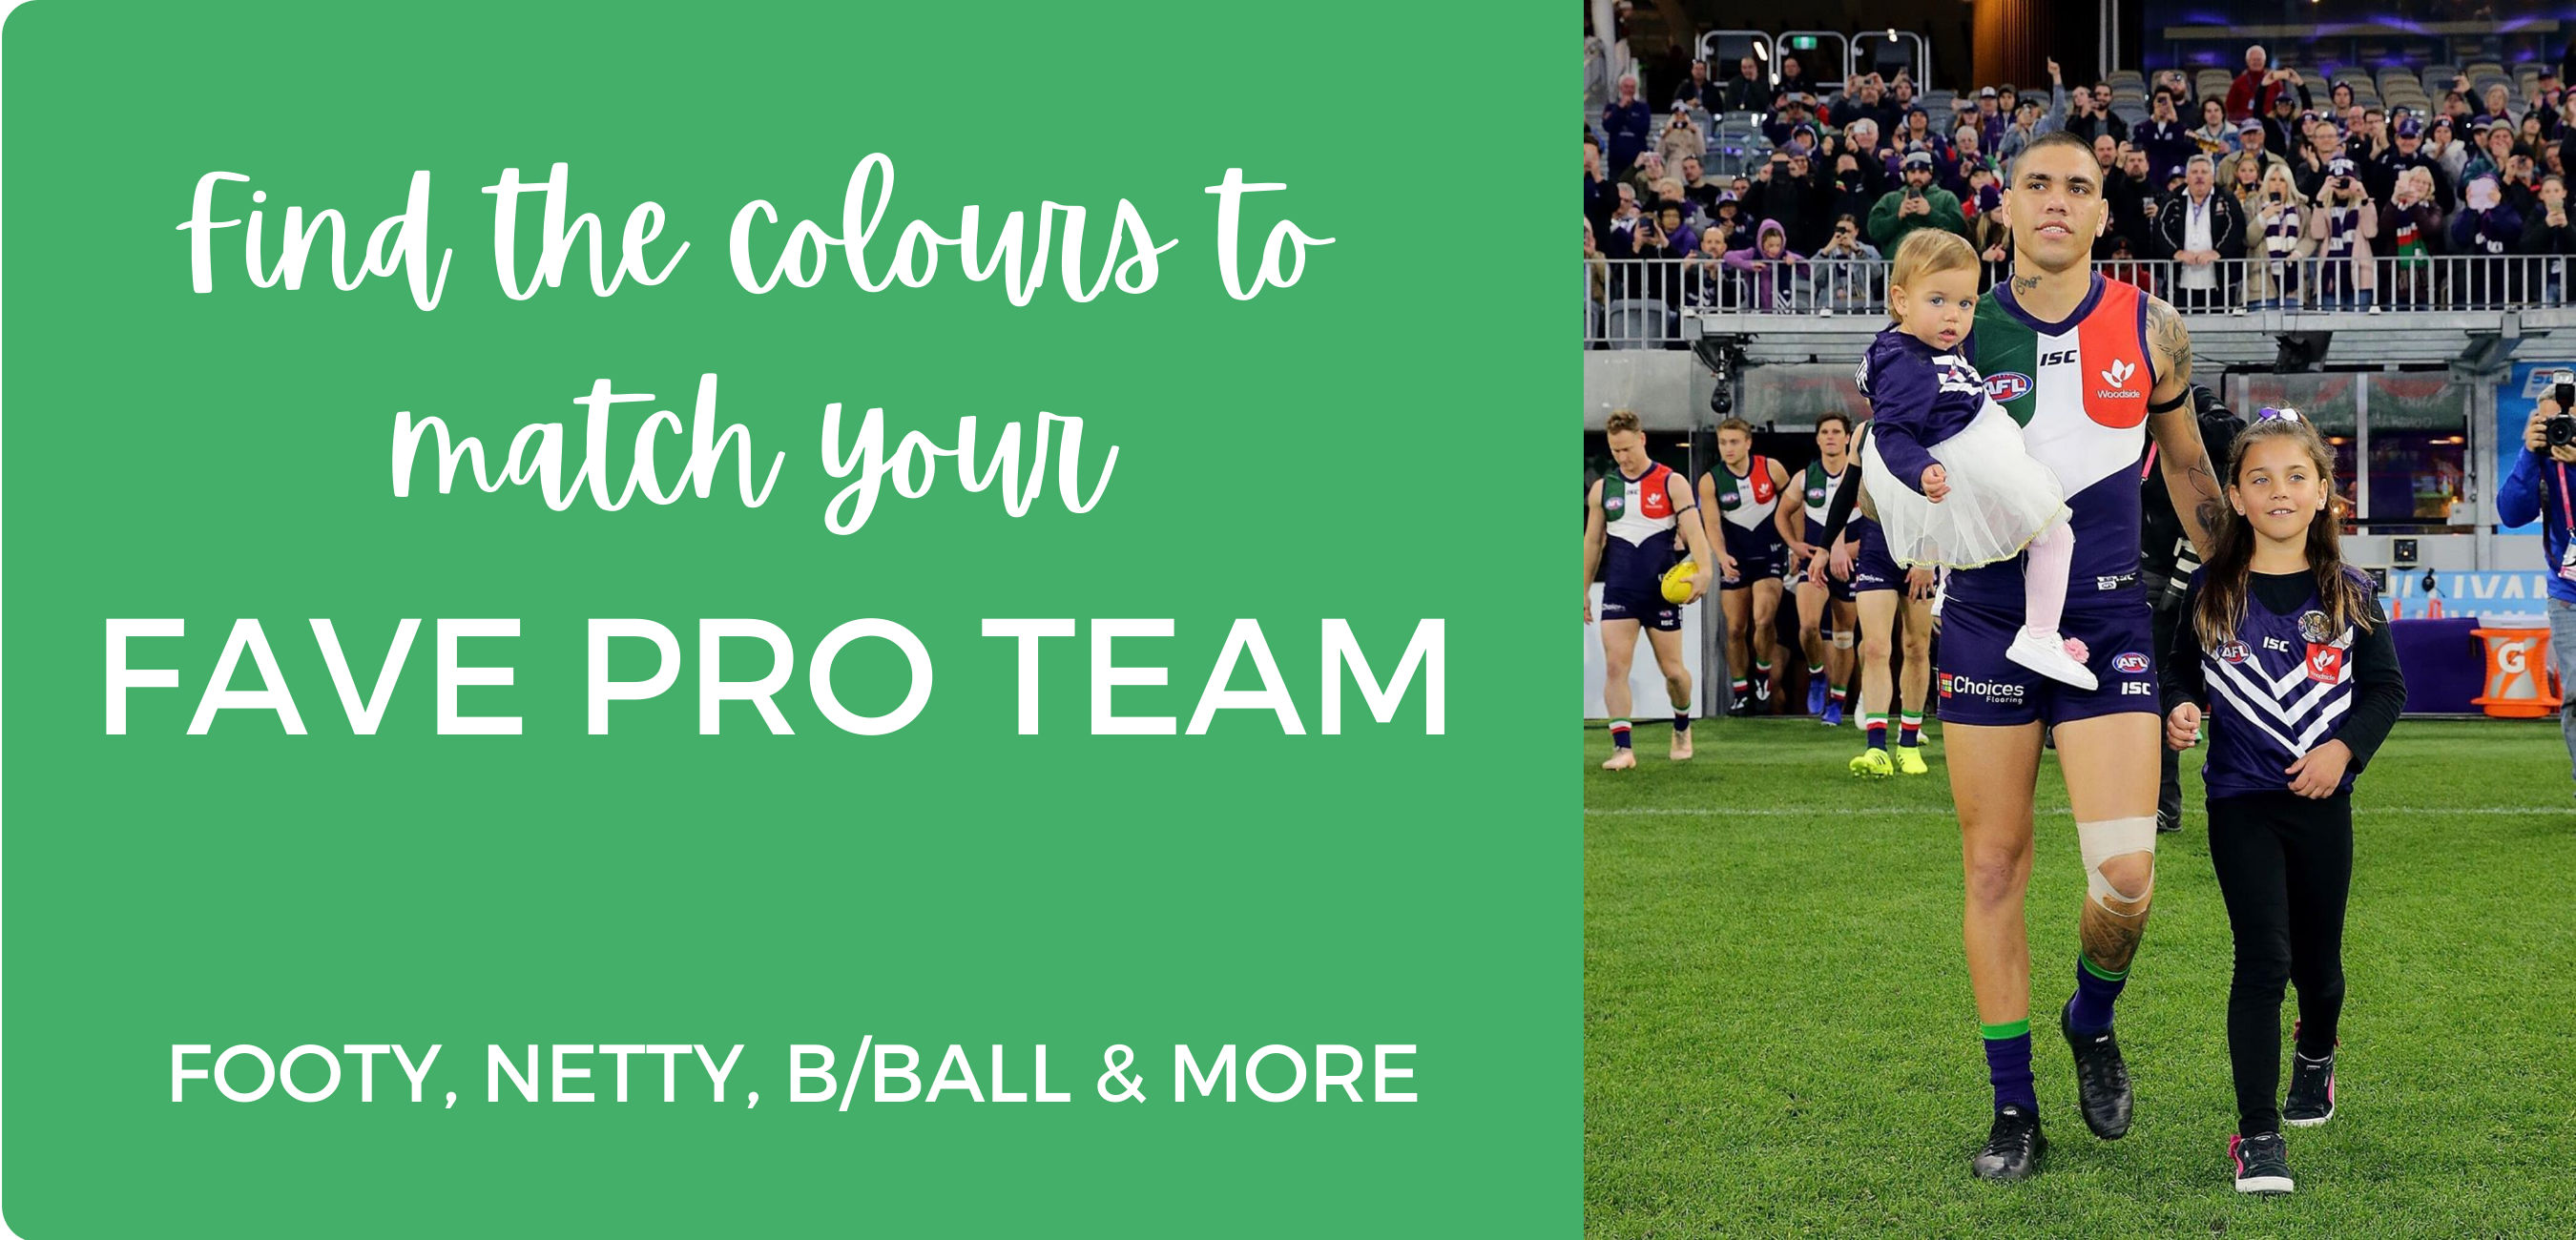 find the colours to match your fave pro team - afl, suncorp super netball, a-league - ponytails and fairytales